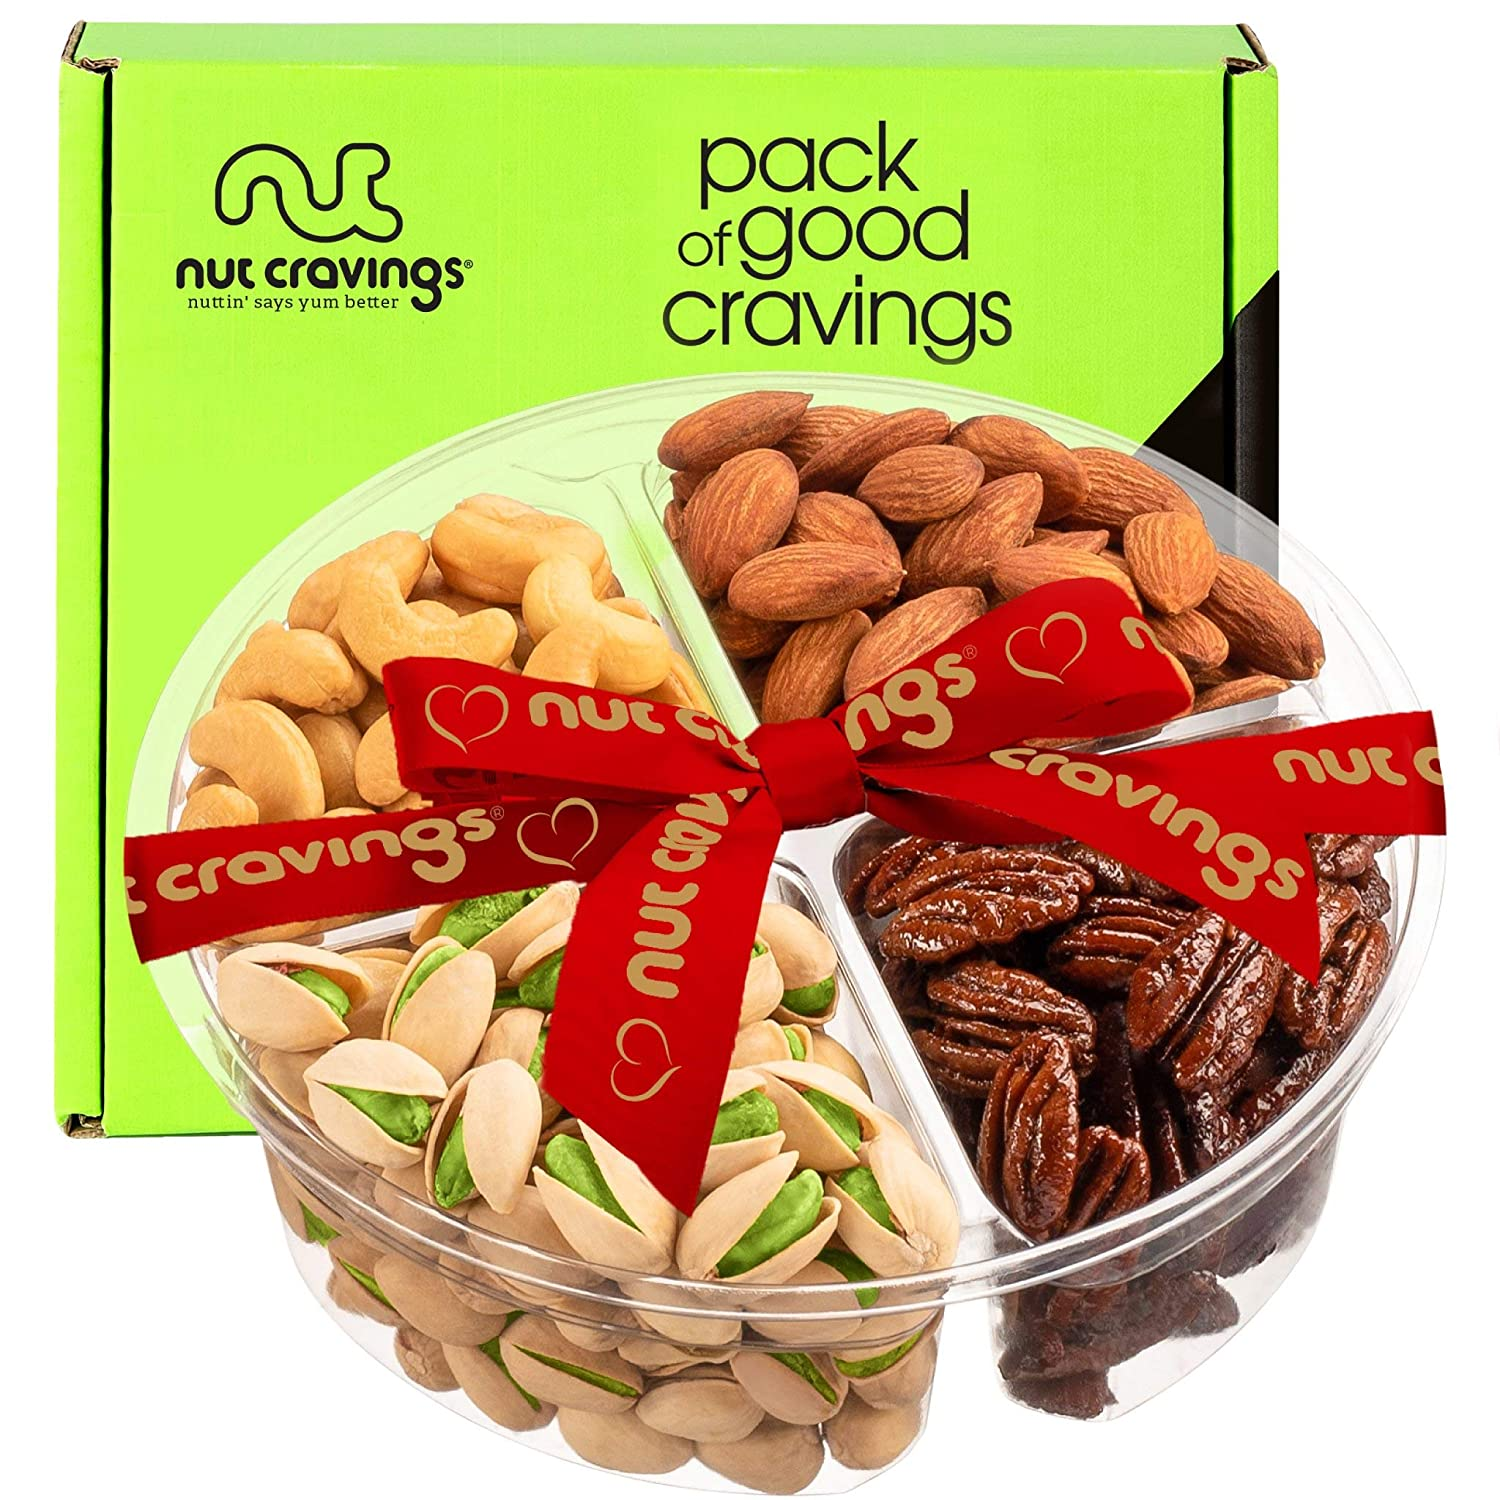 Gourmet Nut Gift Basket, Red Ribbon (4 Mix Tray) - Easter Food Arrangement Platter, Care Package Variety, Prime Birthday Assortment, Healthy Kosher Snack Box for Families, Women, Men, Adults